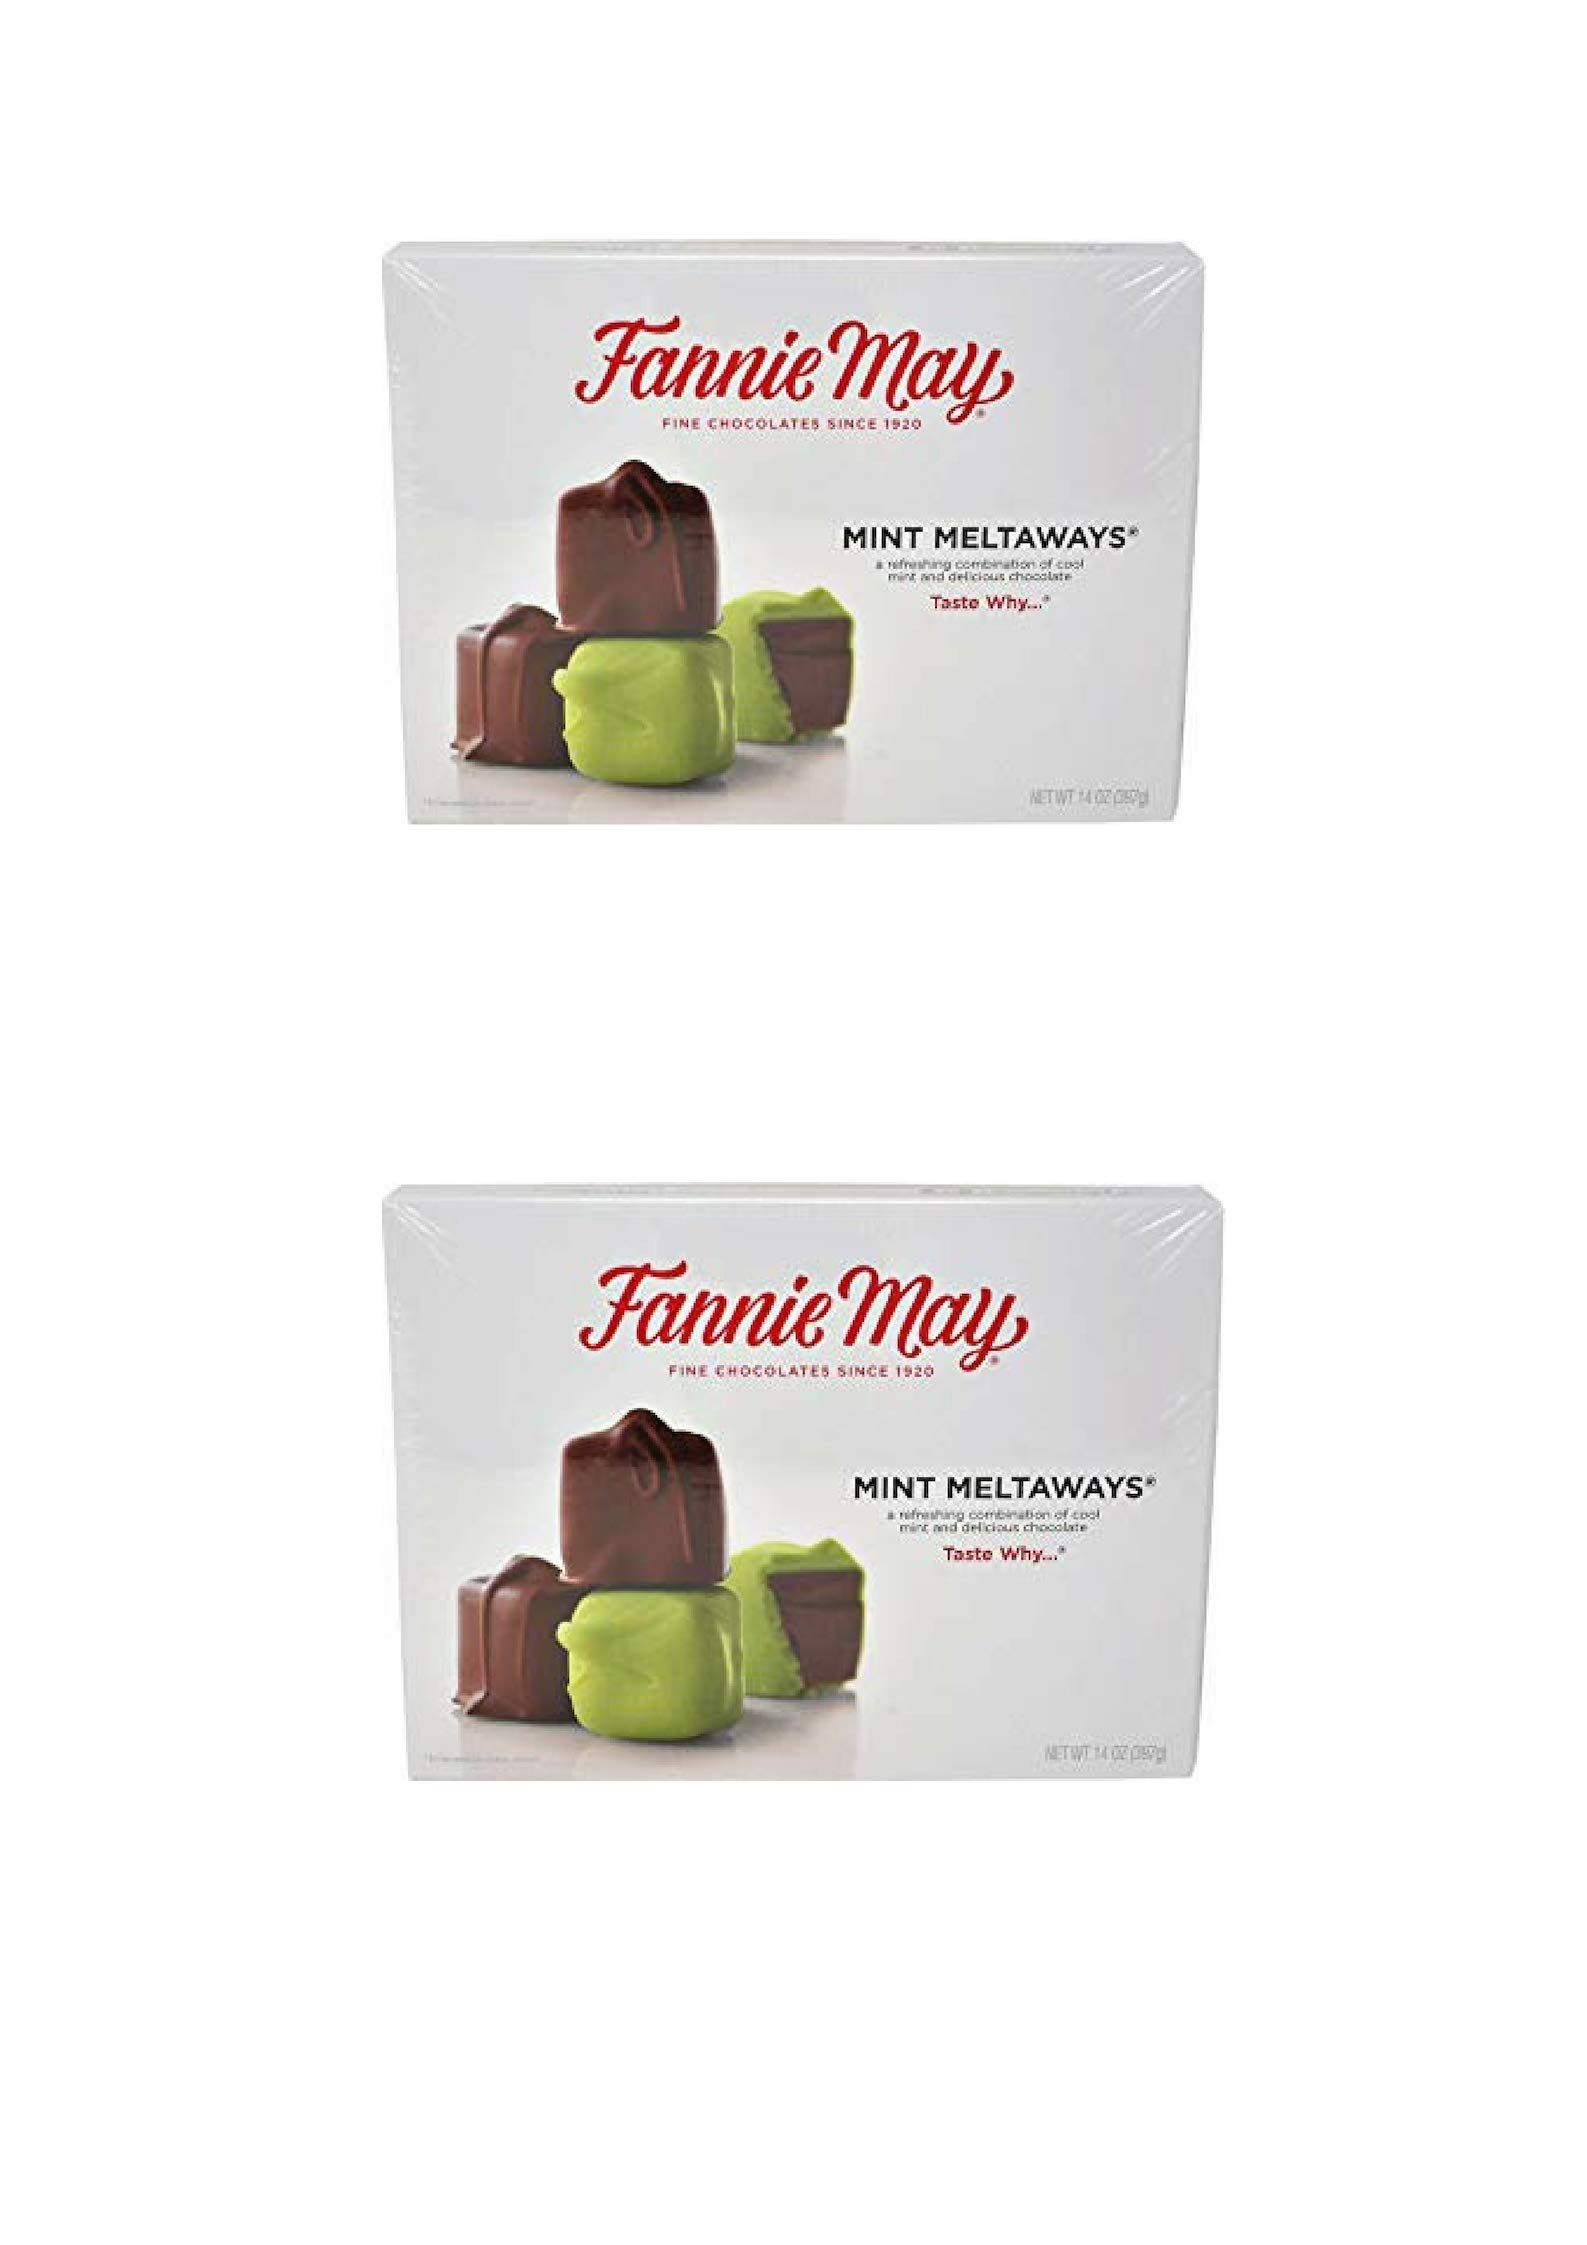 Fannie May Chocolate Candy (Mint Meltaways, 14oz) (2 PACK) by Fannie May